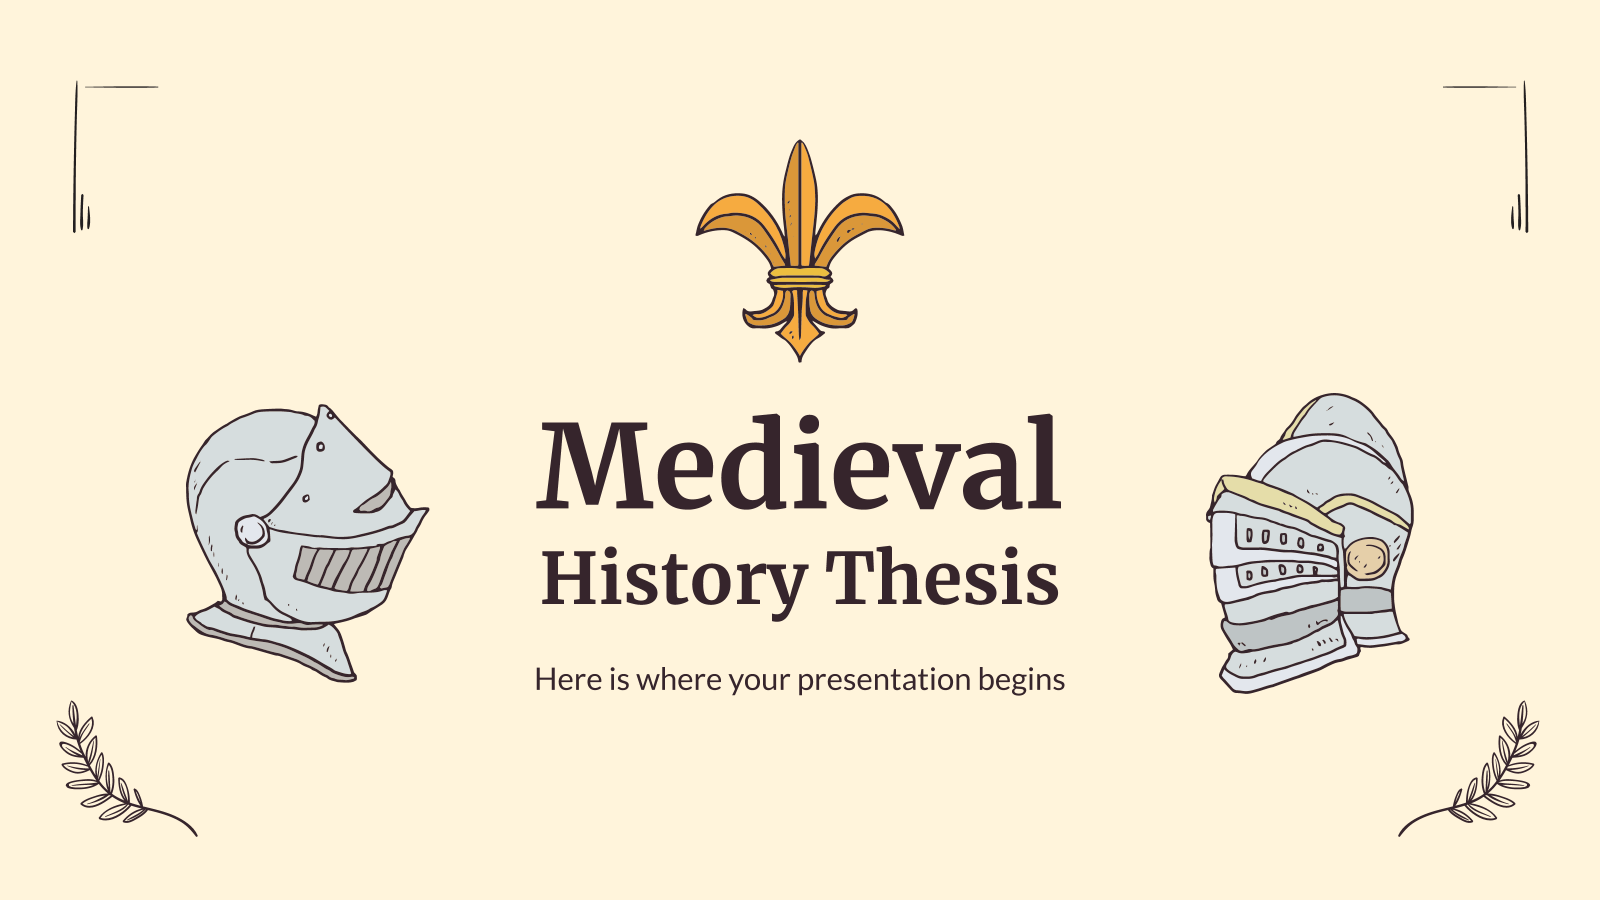 Medieval History Thesis presentation template